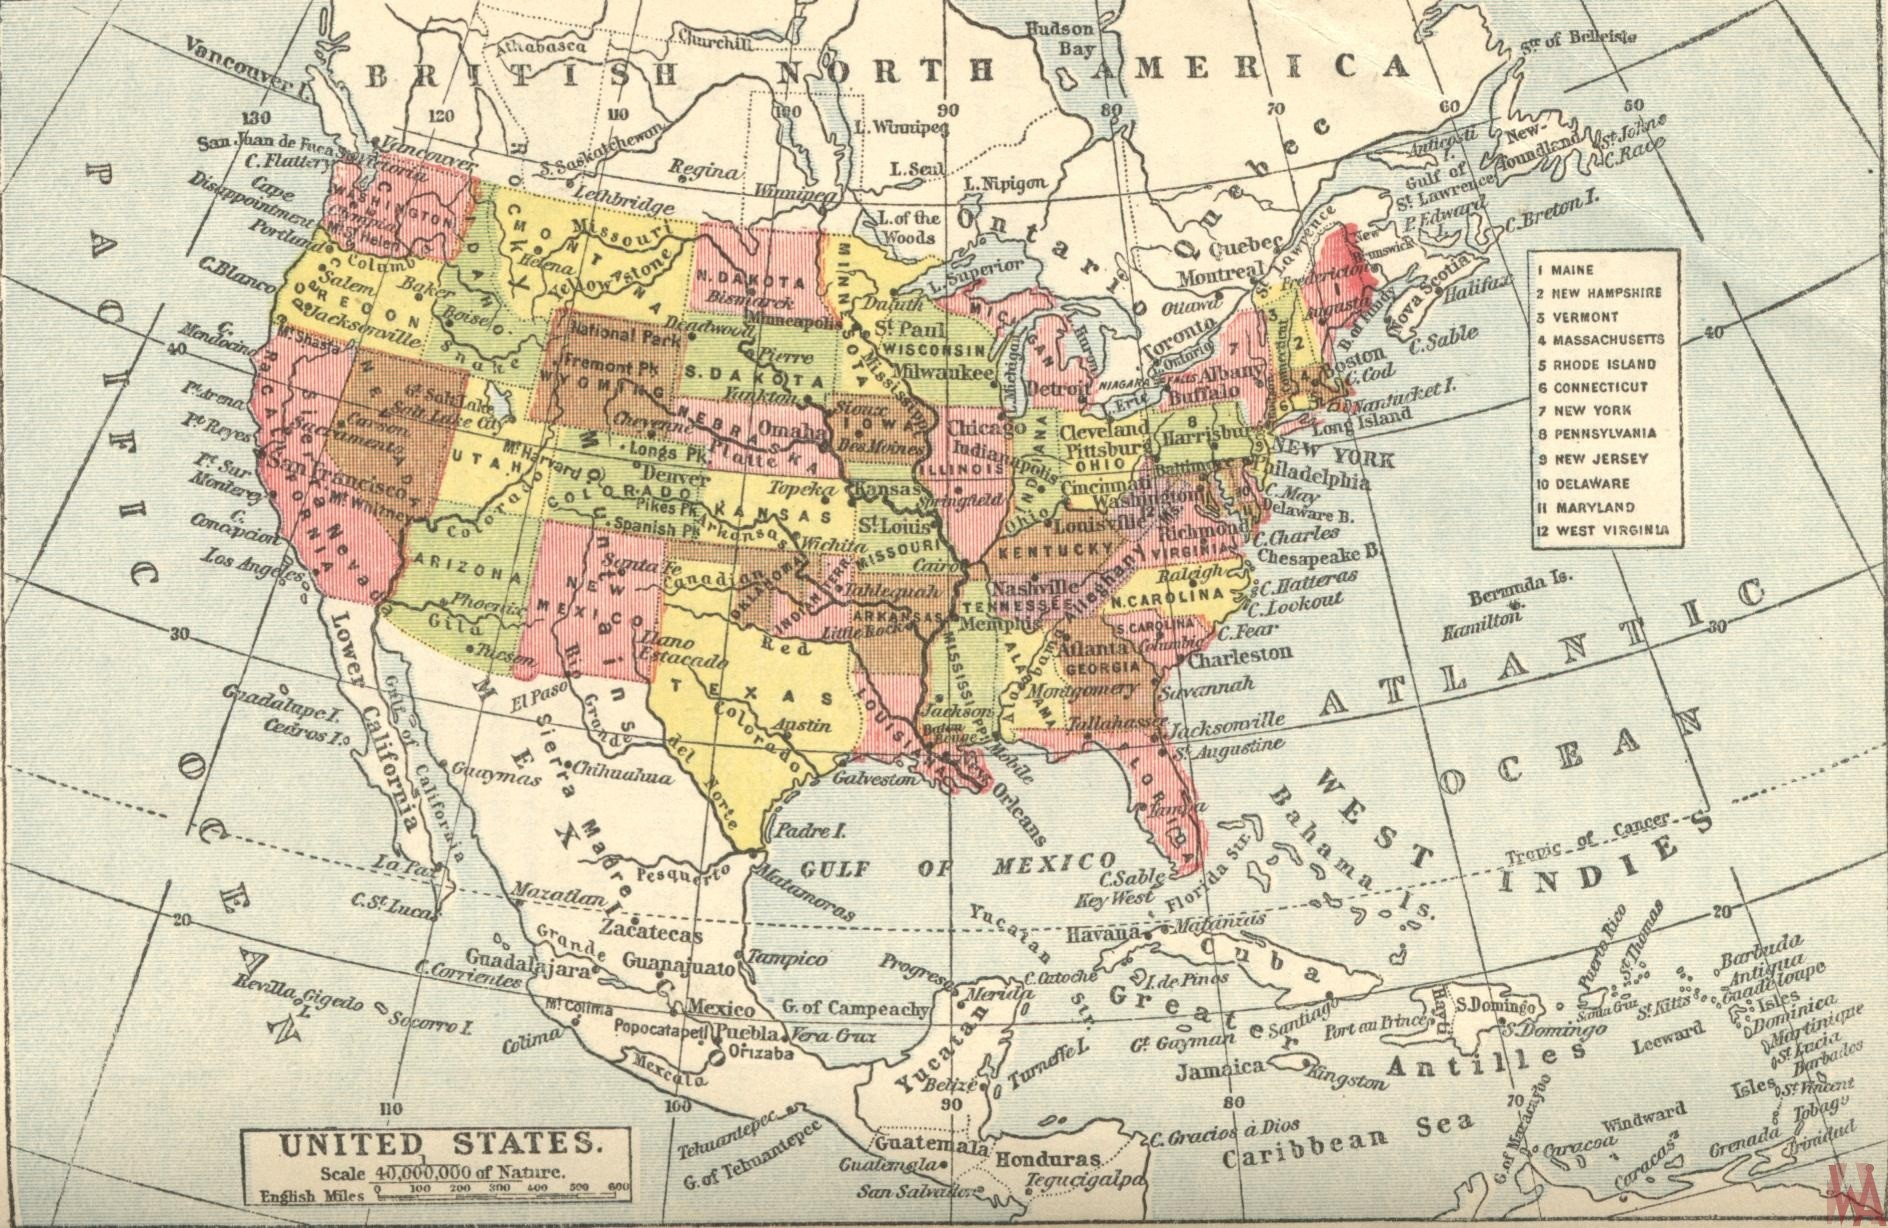 Historical map of the British United States